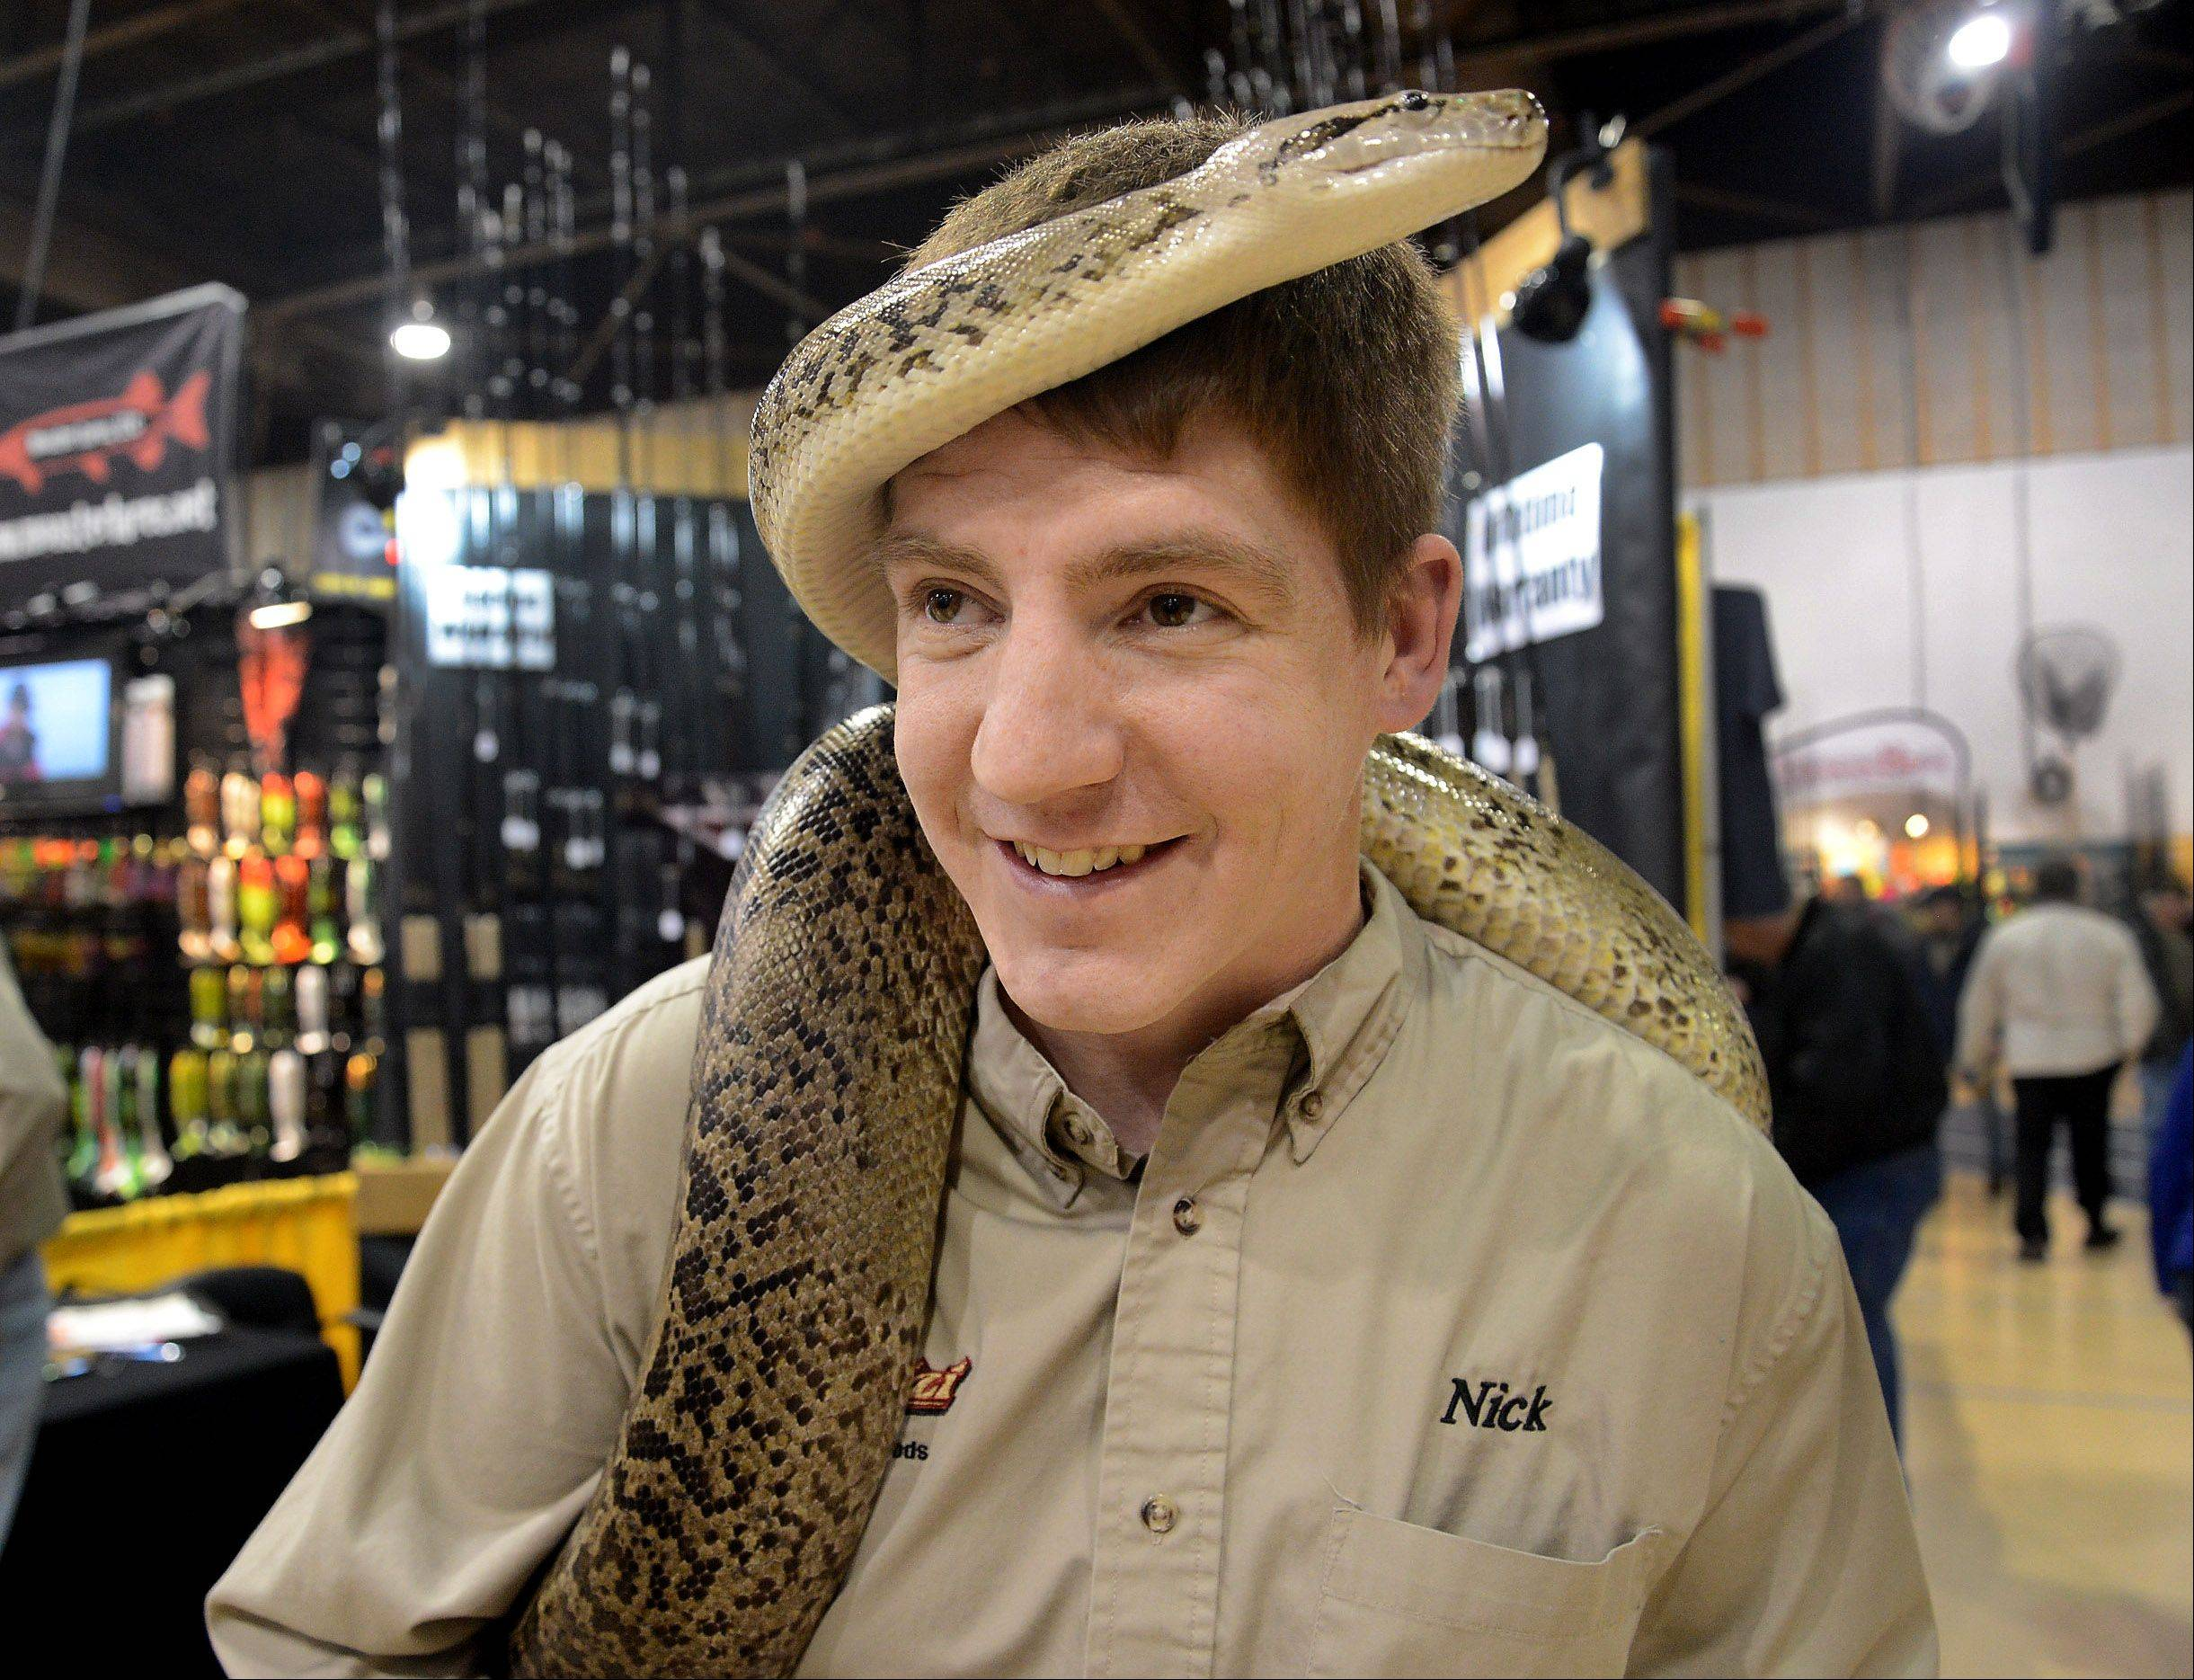 Nick D'Andrea of Chicago gets wrapped up in his granite Burmese python while promoting Migizi snakeskin inlay fishing rods at the Chicago Muskie Show at Harper College.